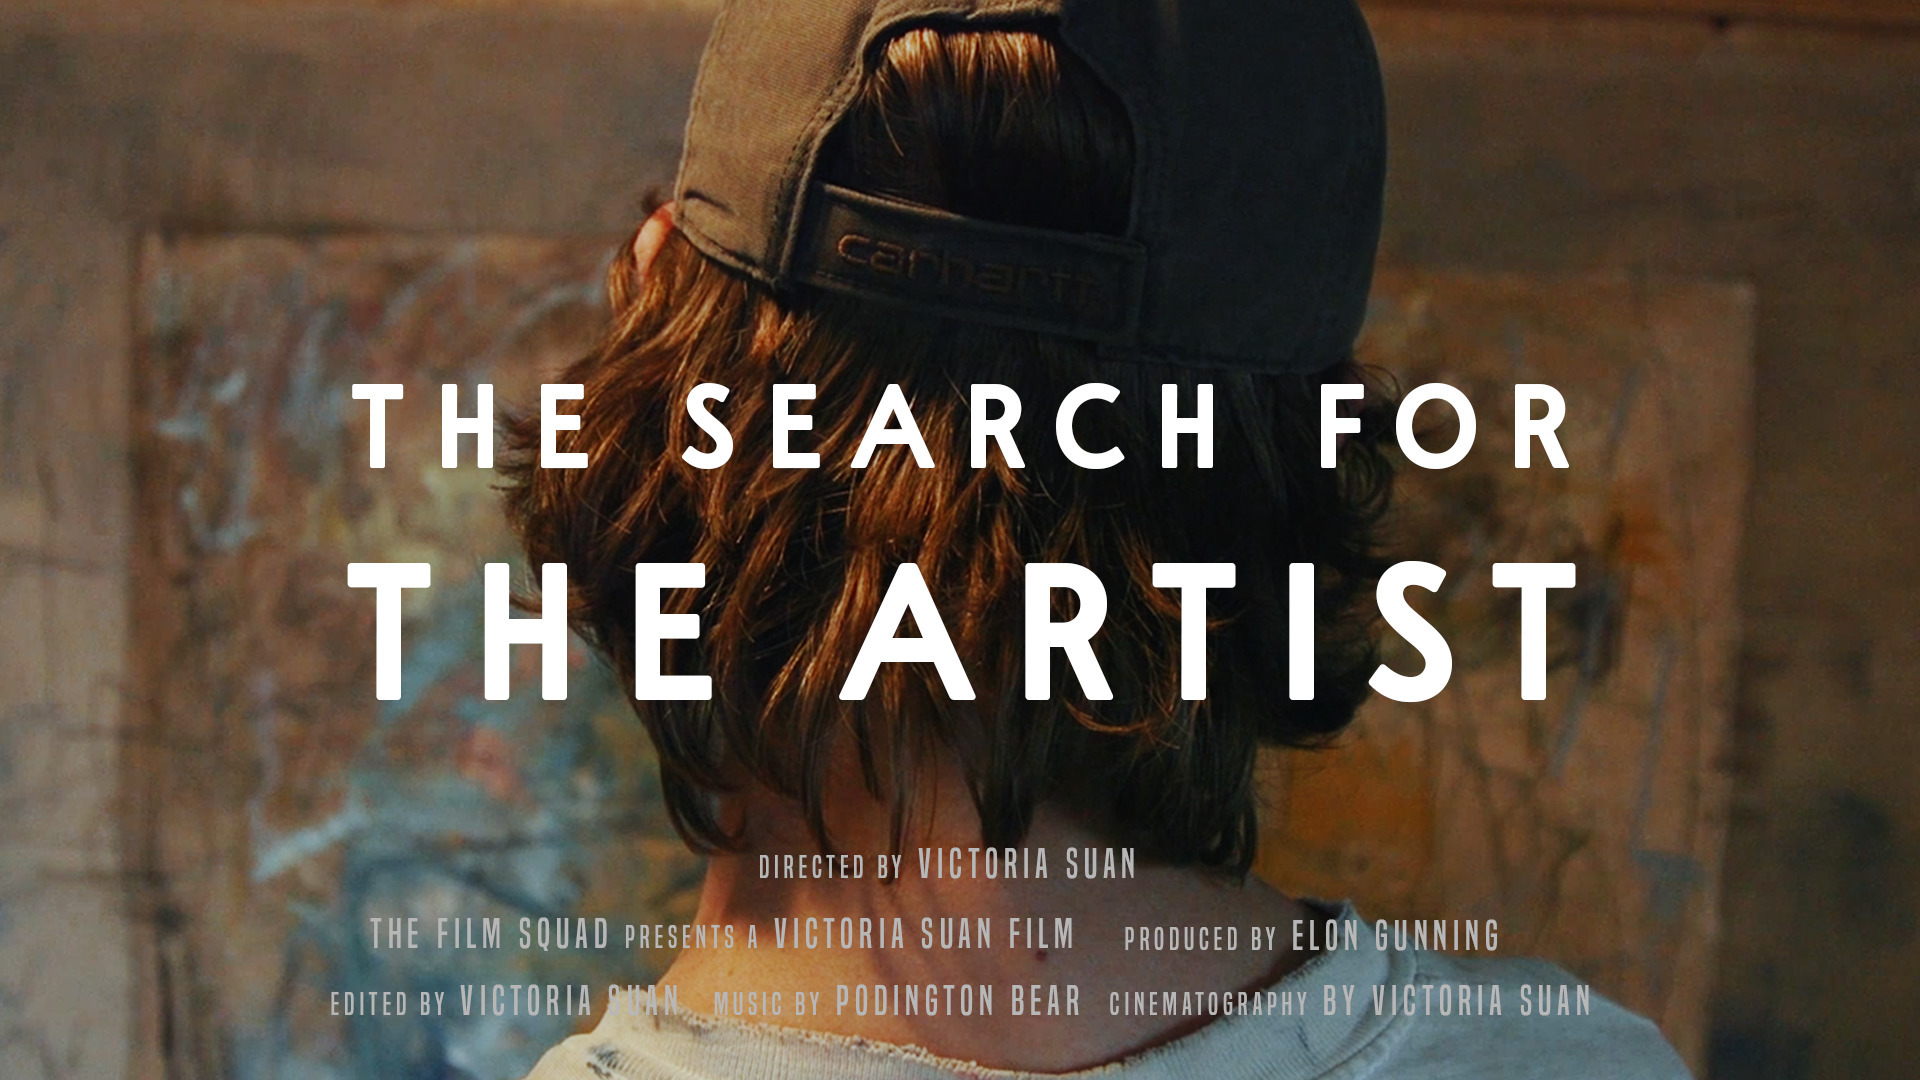 The Search for the Artist